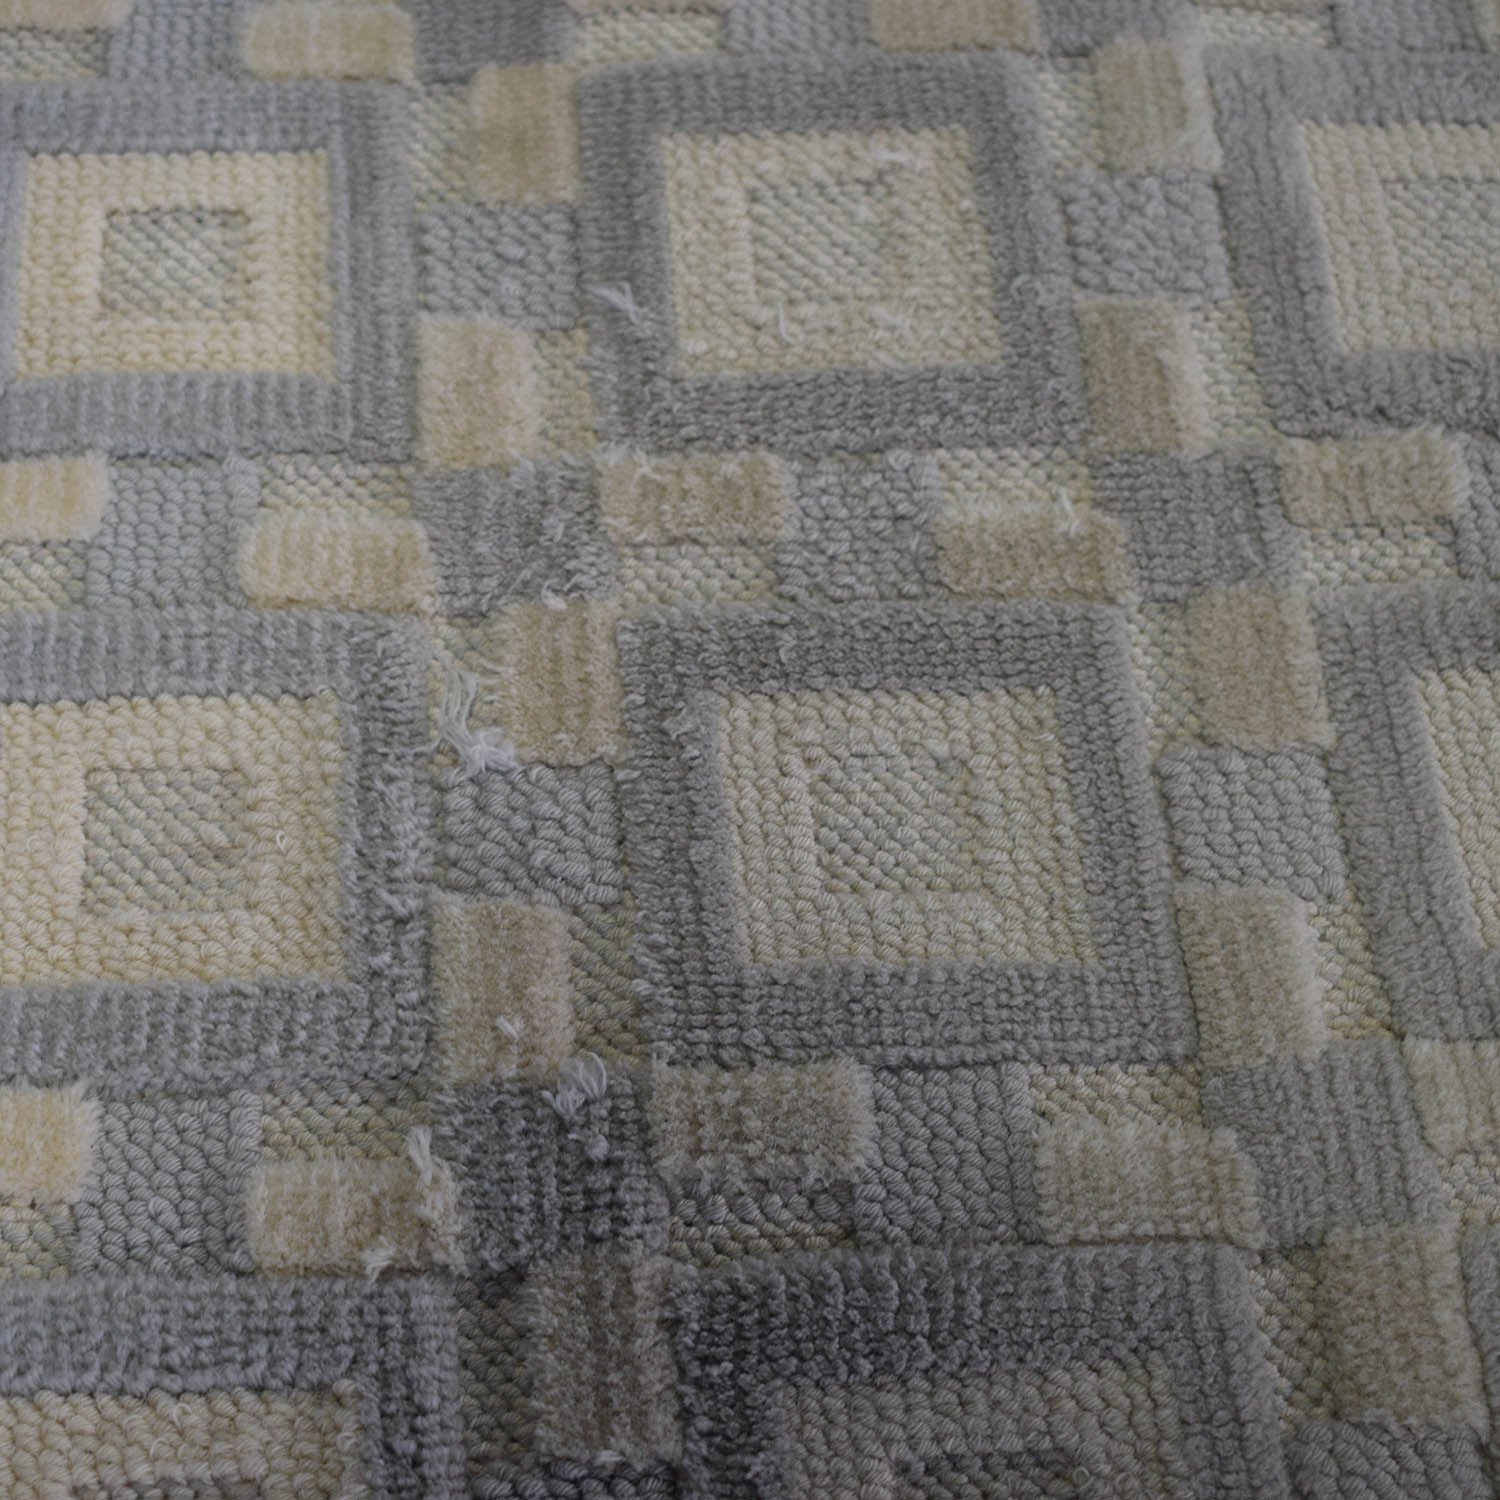 Gray and White 9x12 Natural Fiber Rug dimensions